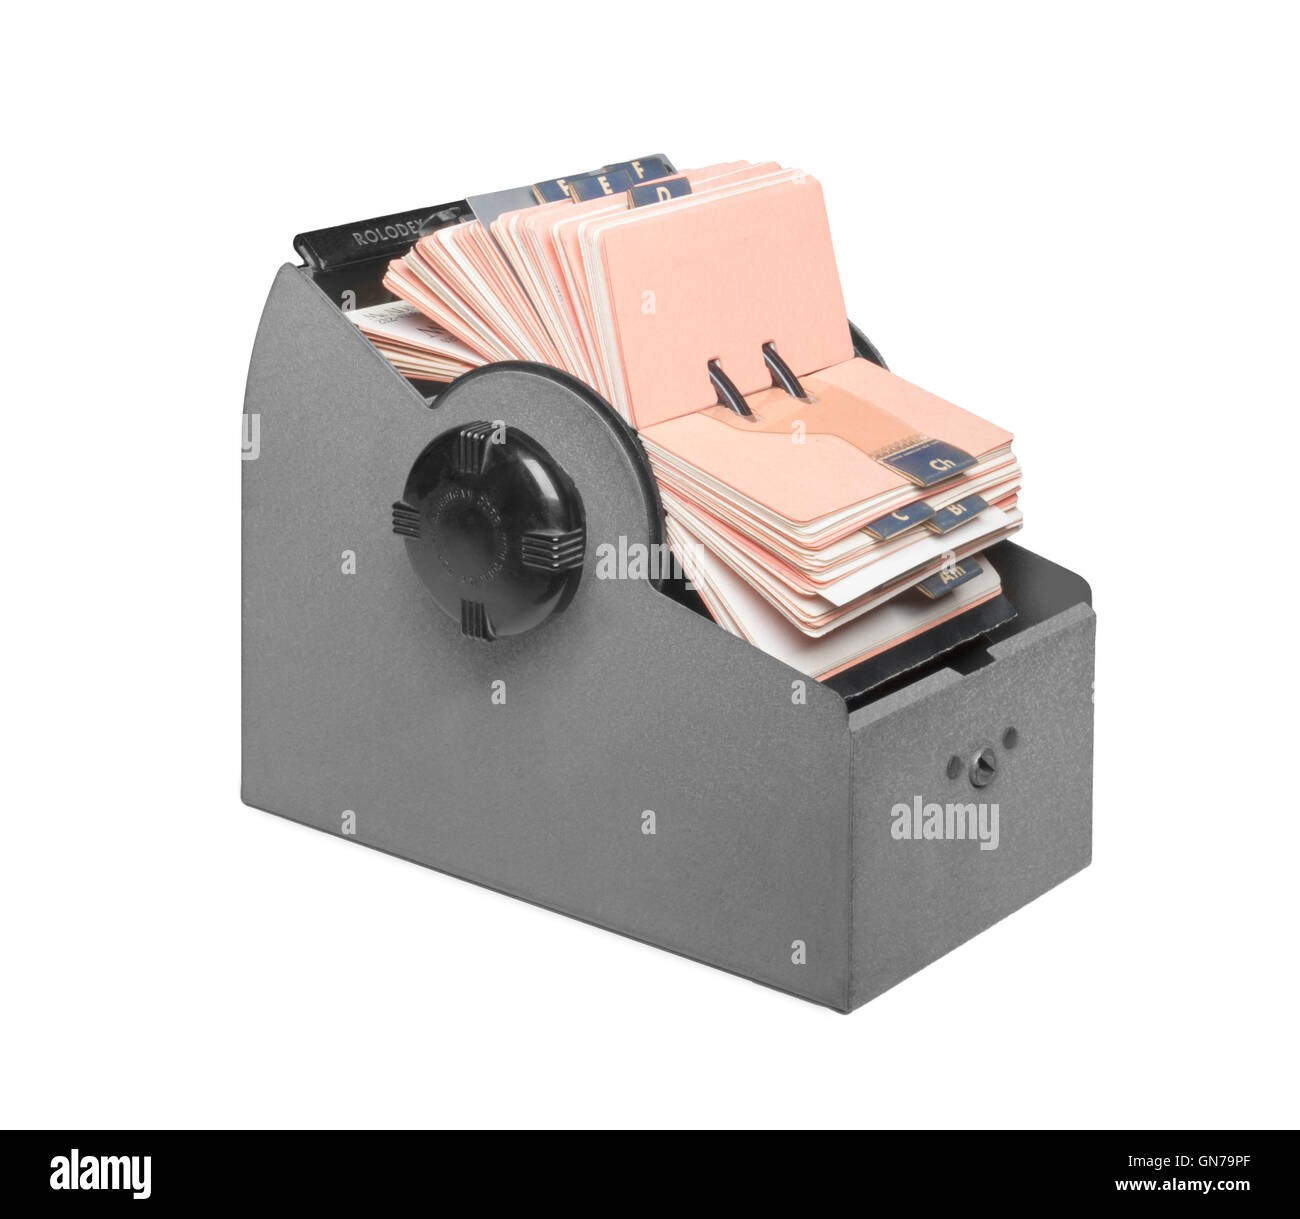 Mid-century Rolodex file open front right - Stock Image